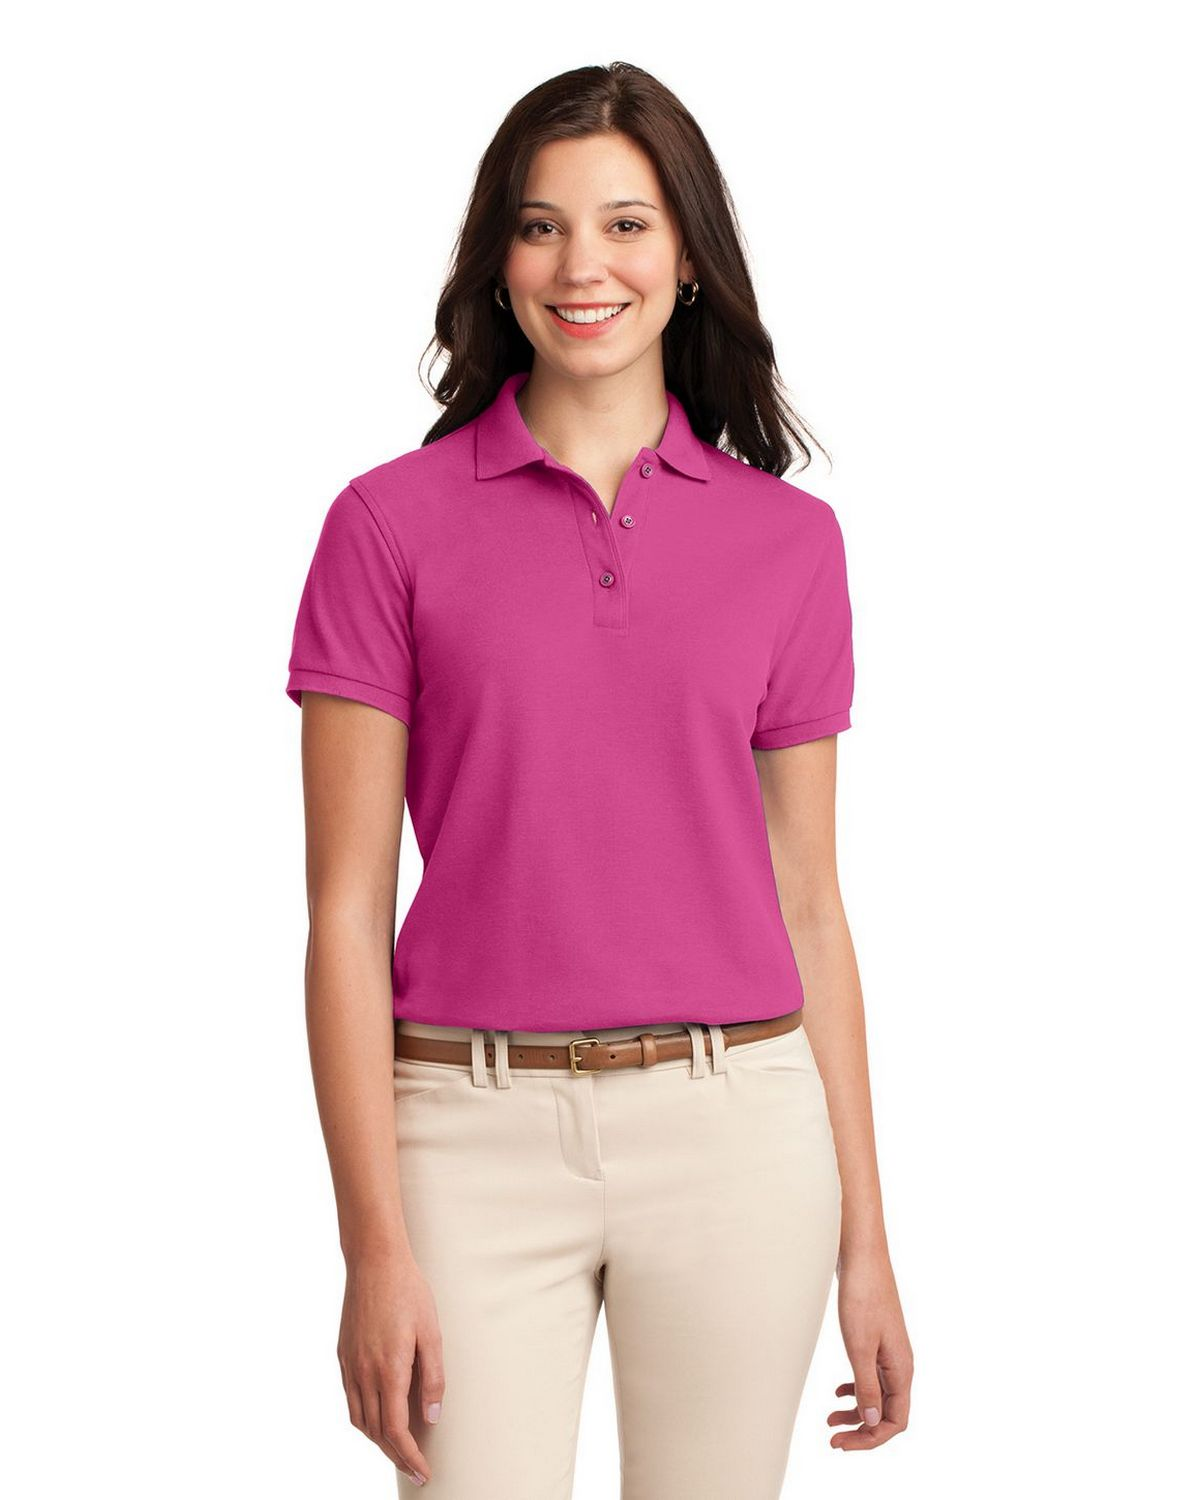 Port Authority L500 Women's Silk Touch Polo - Tropical Pink - XS #silk